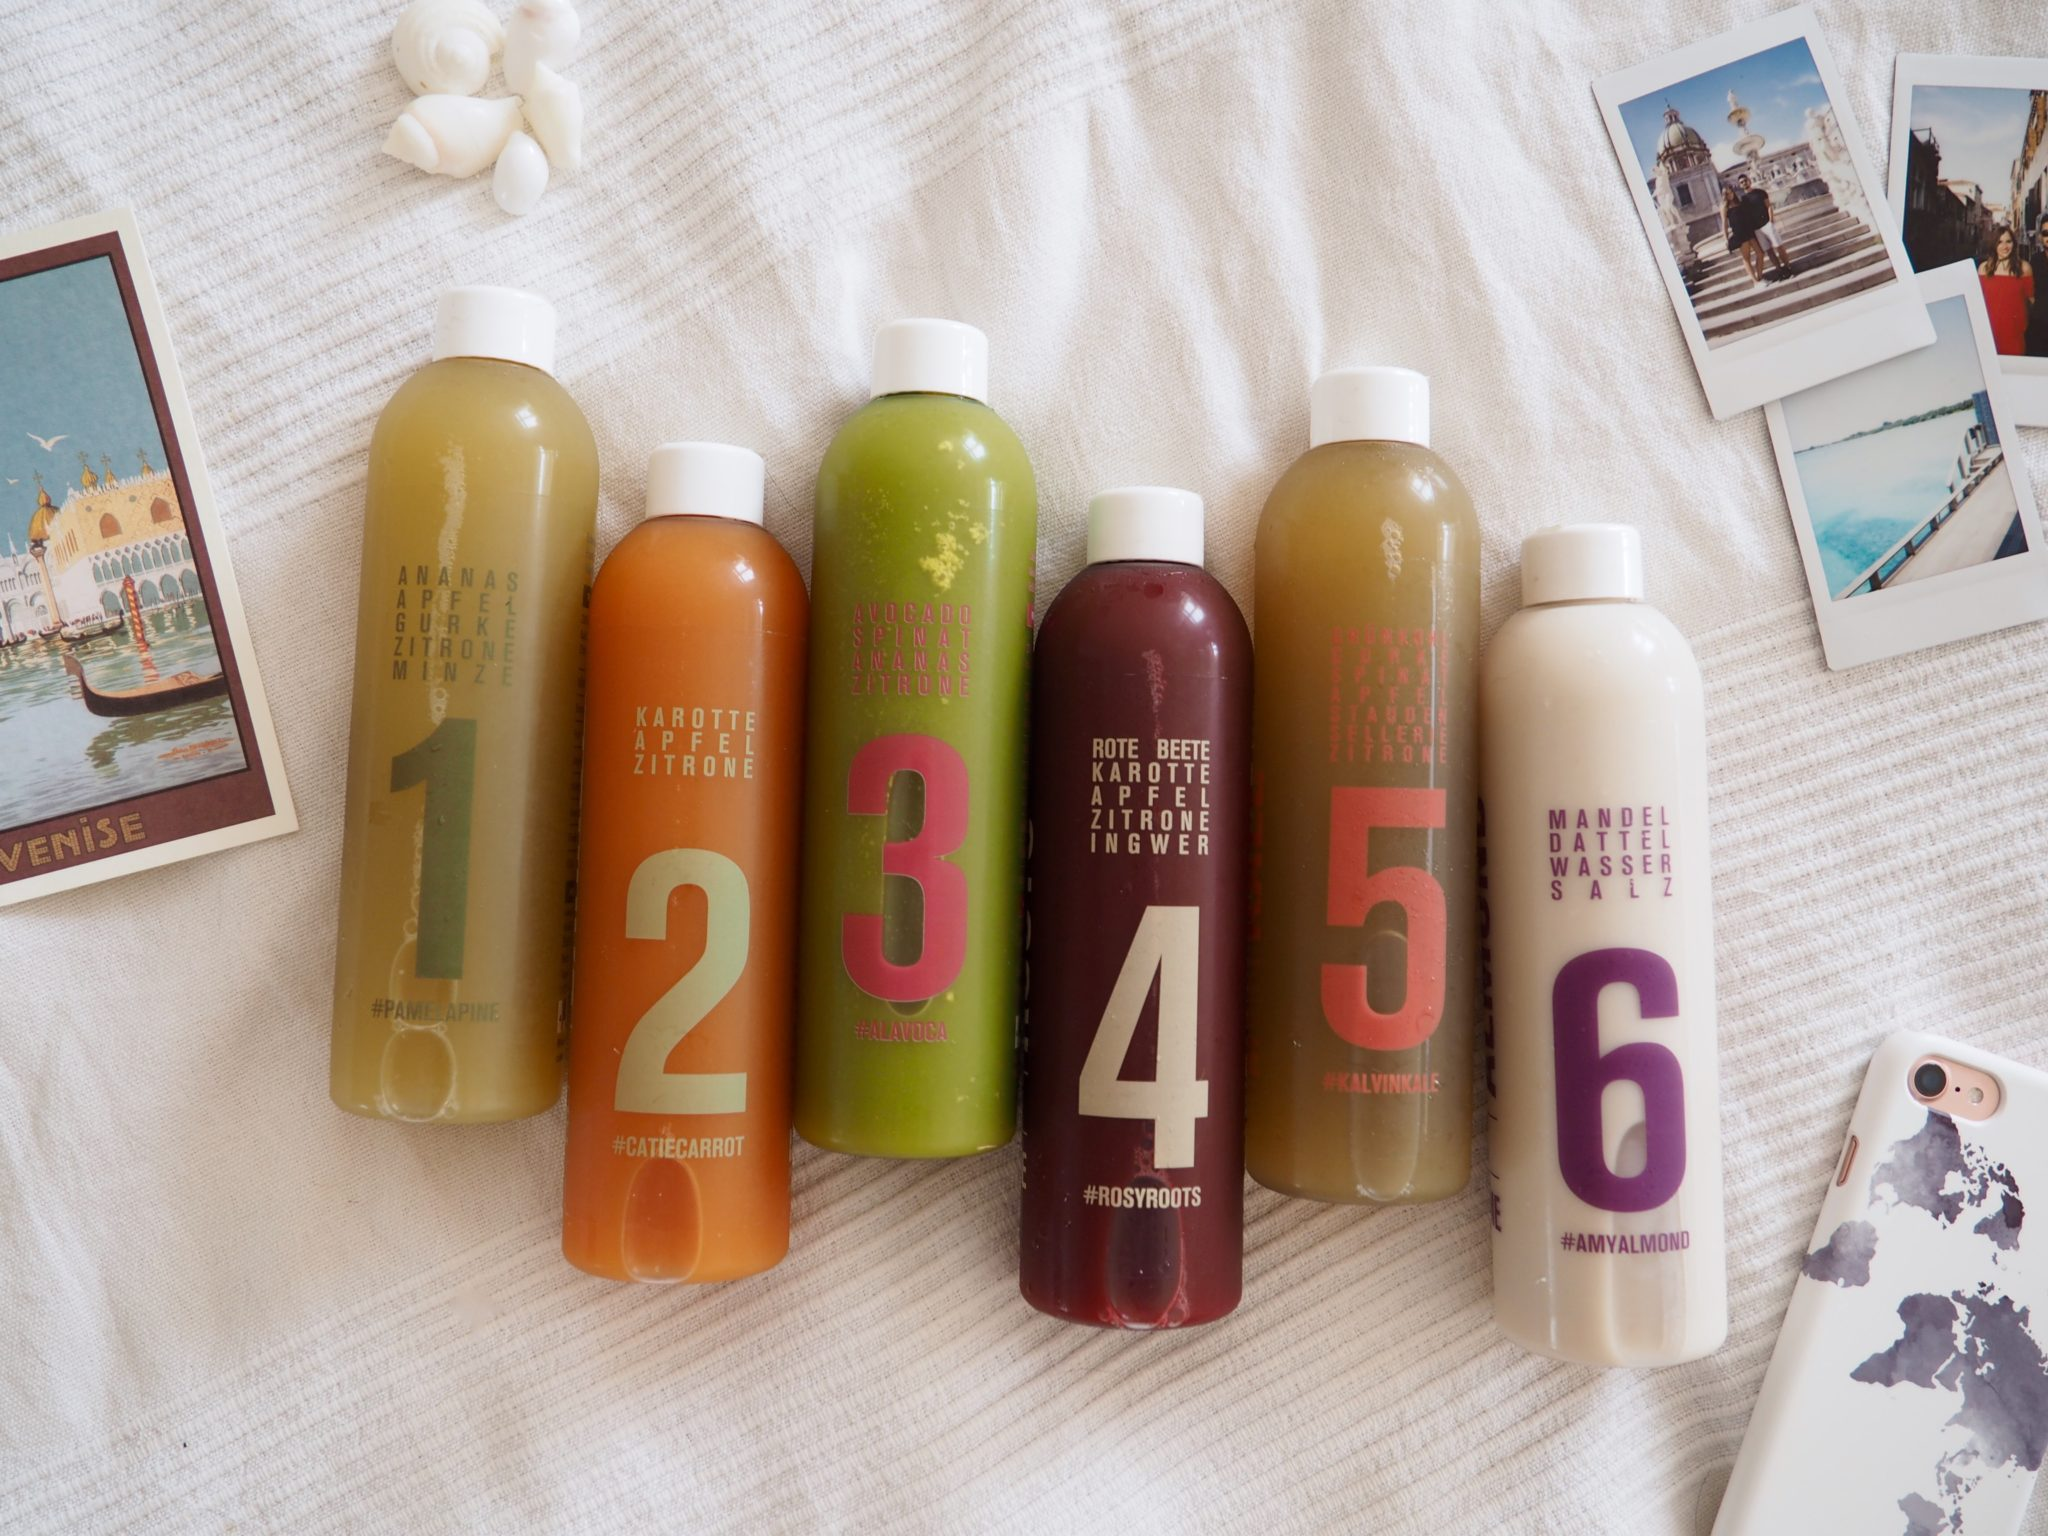 Post-Travel Detox: My Juice Cleanse Experience with 'Kale ...